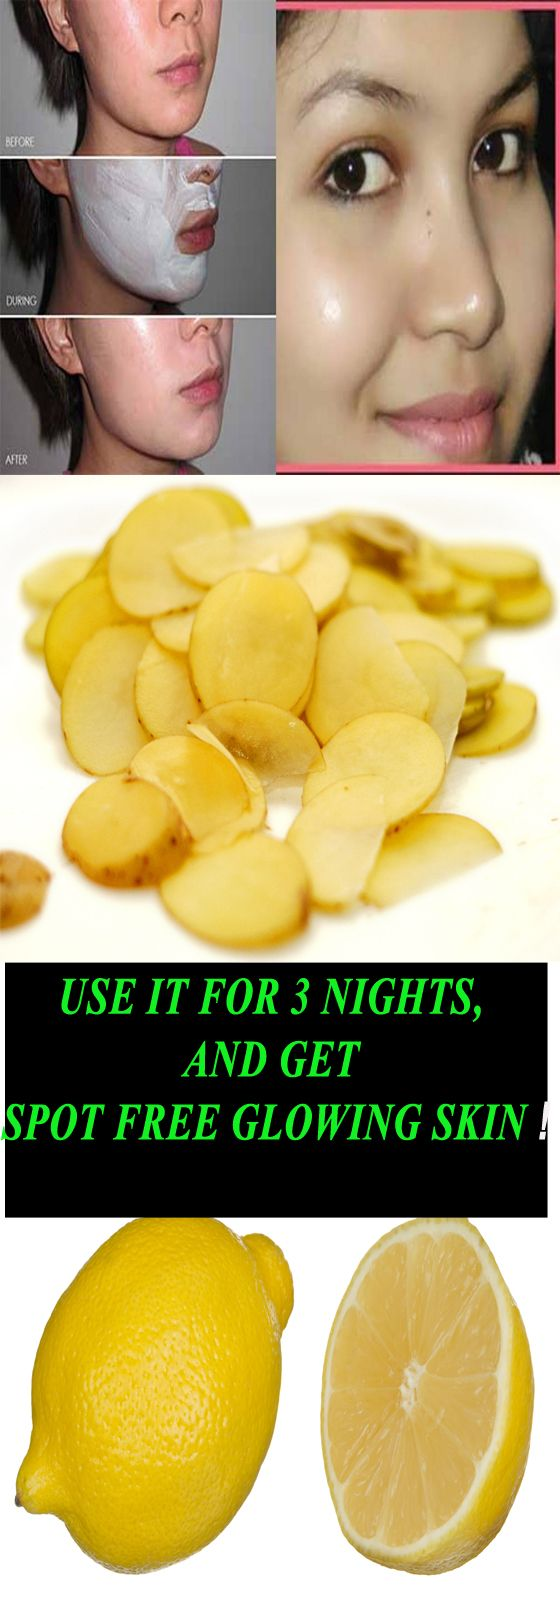 Use this for 3 nights and get spot free, glowing skin.